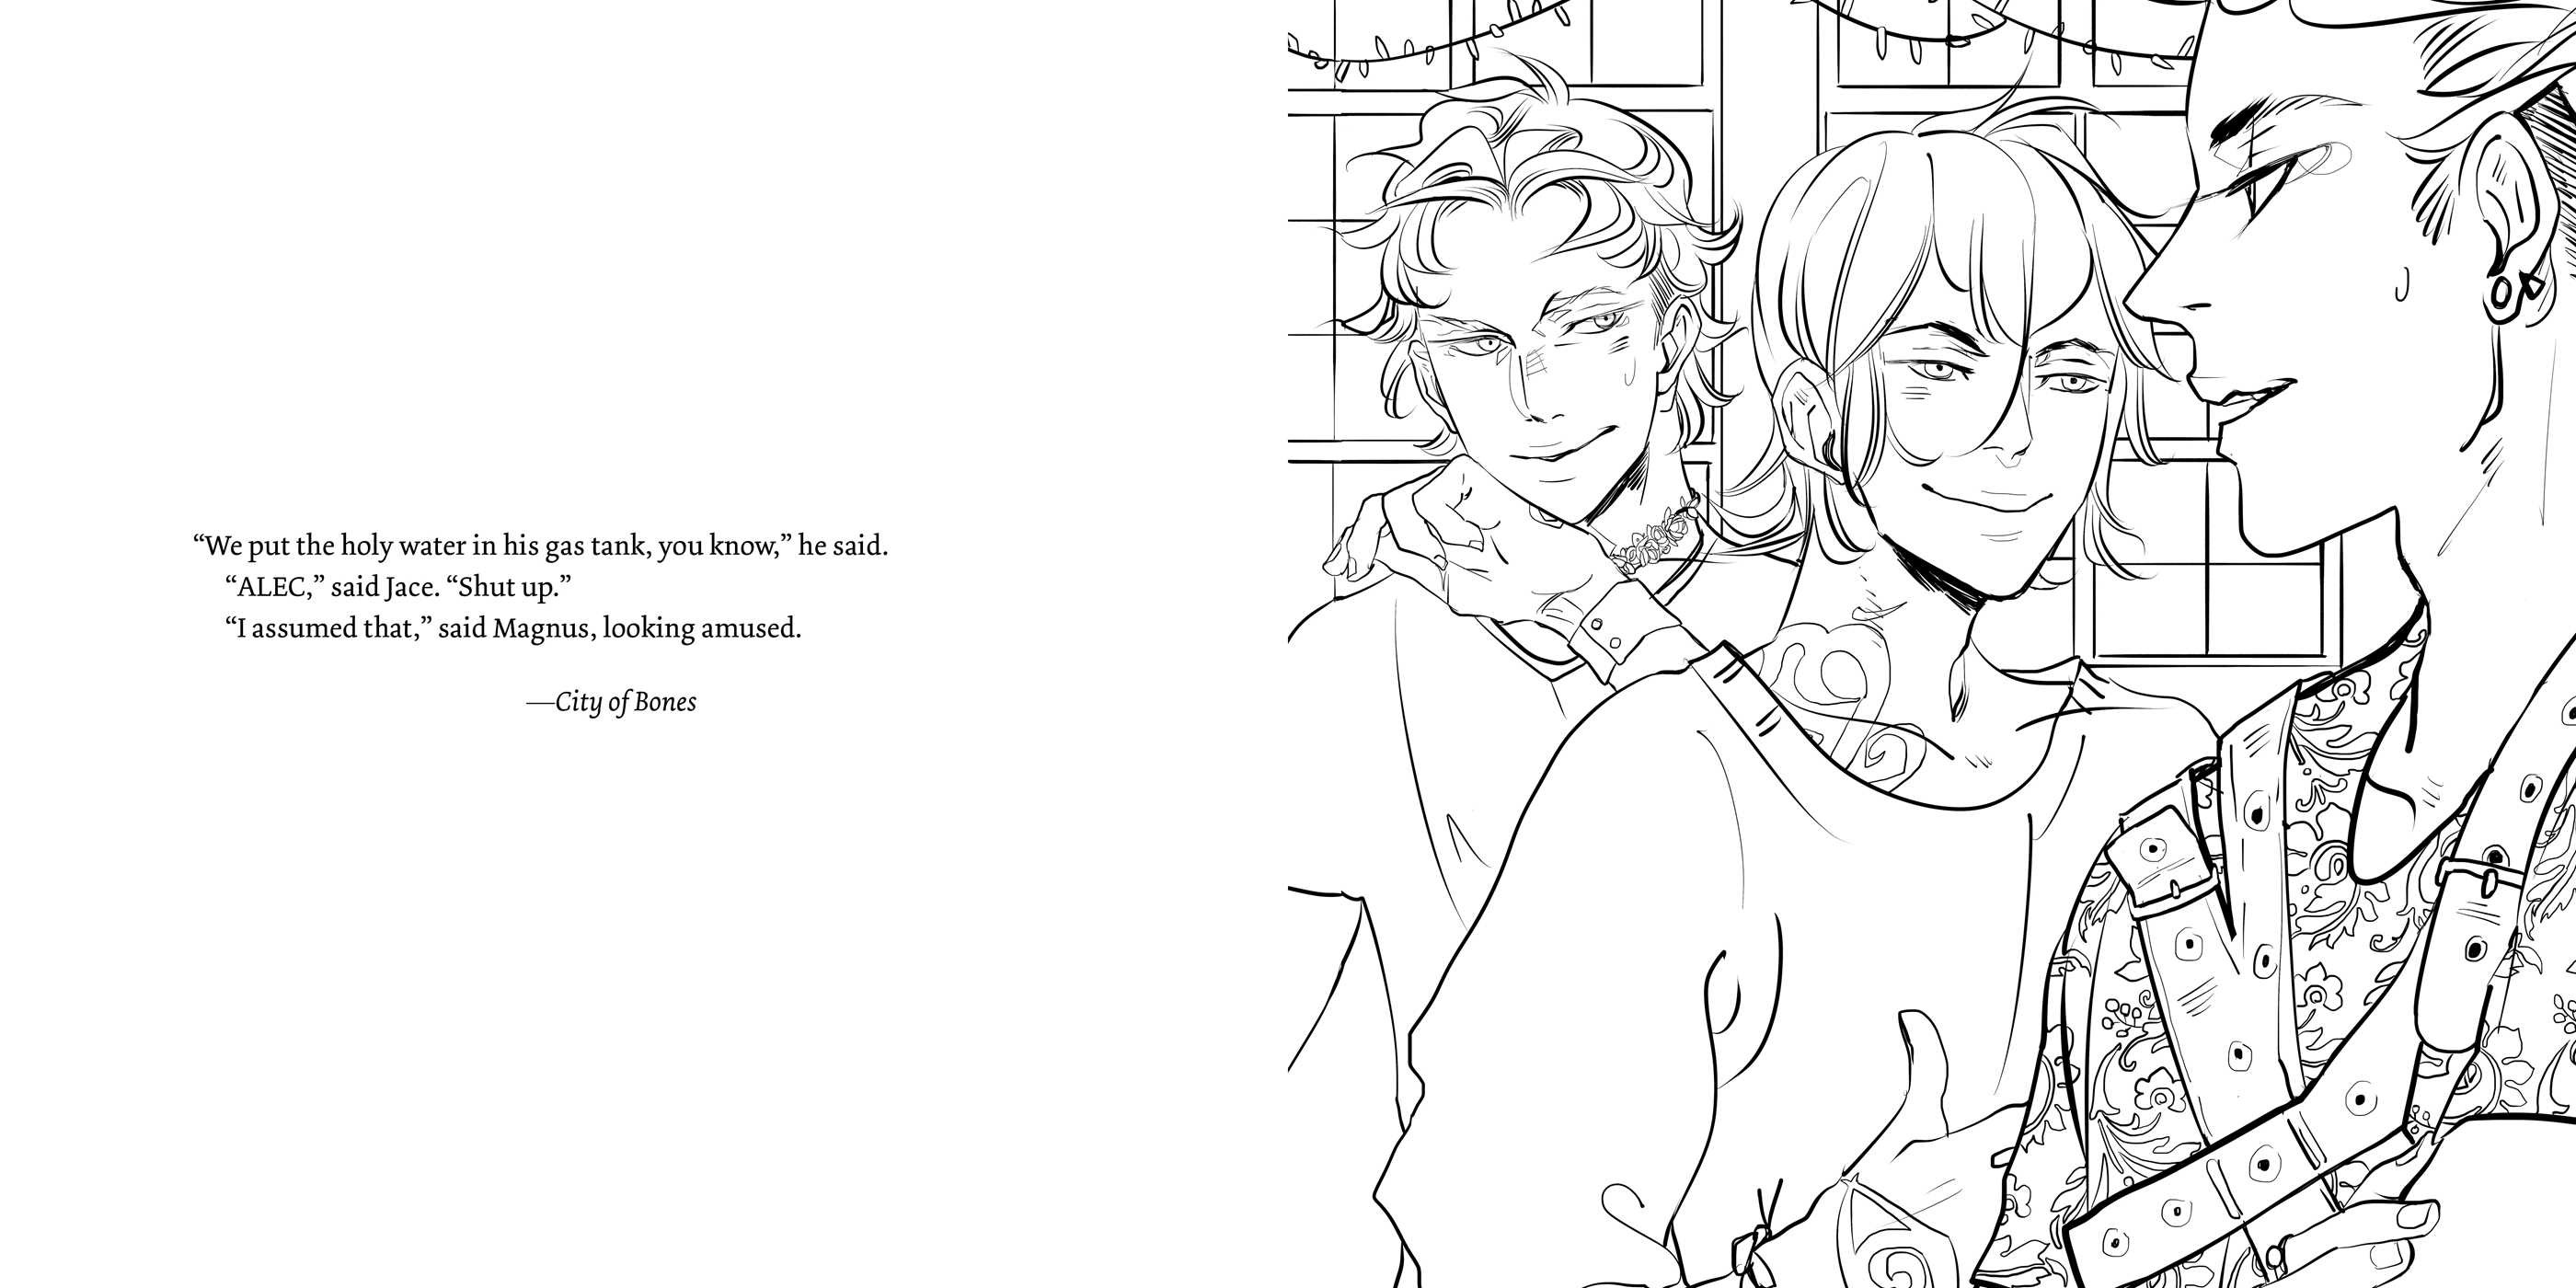 The official mortal instruments coloring book 9781481497565.in05